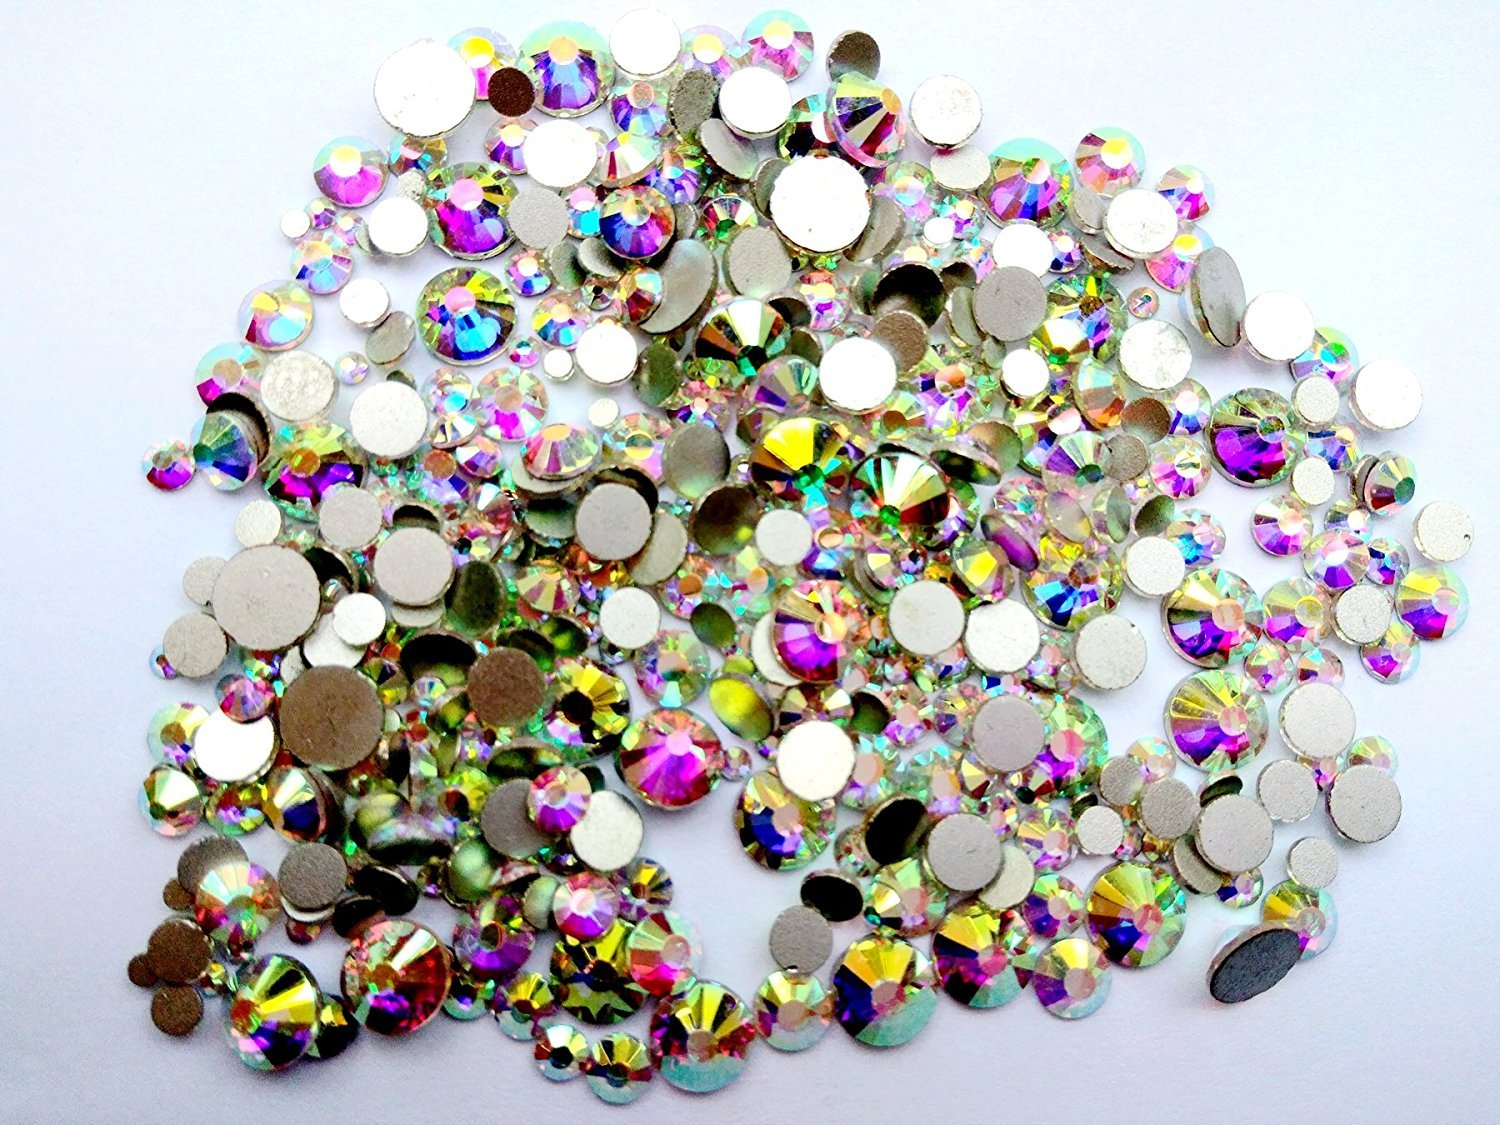 Crystal AB / Crystal FlatBack Glass Rhinestones Glue Fix (ss6 (2mm) 1440 pcs, Crystal AB) [By Zealer] Come with NO CASE